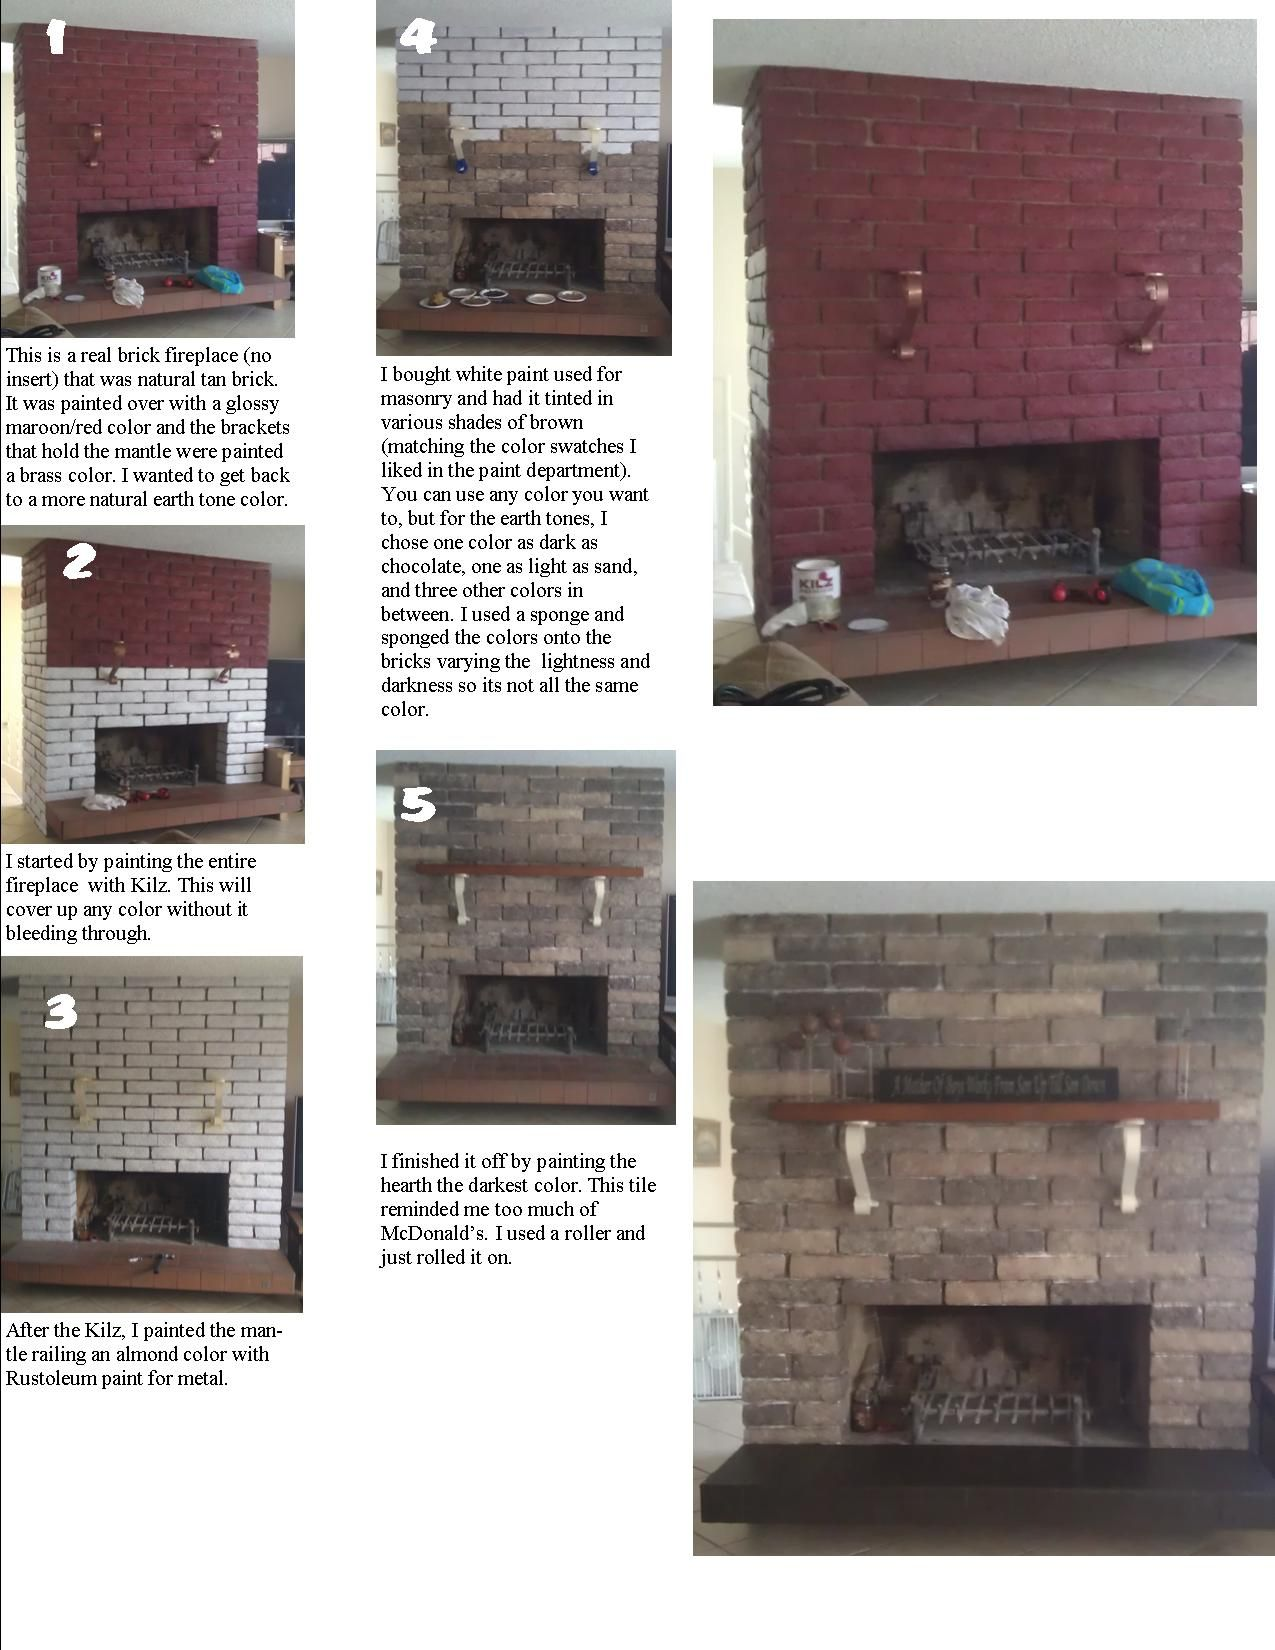 refinishing a brick fireplace that was painted an ugly color